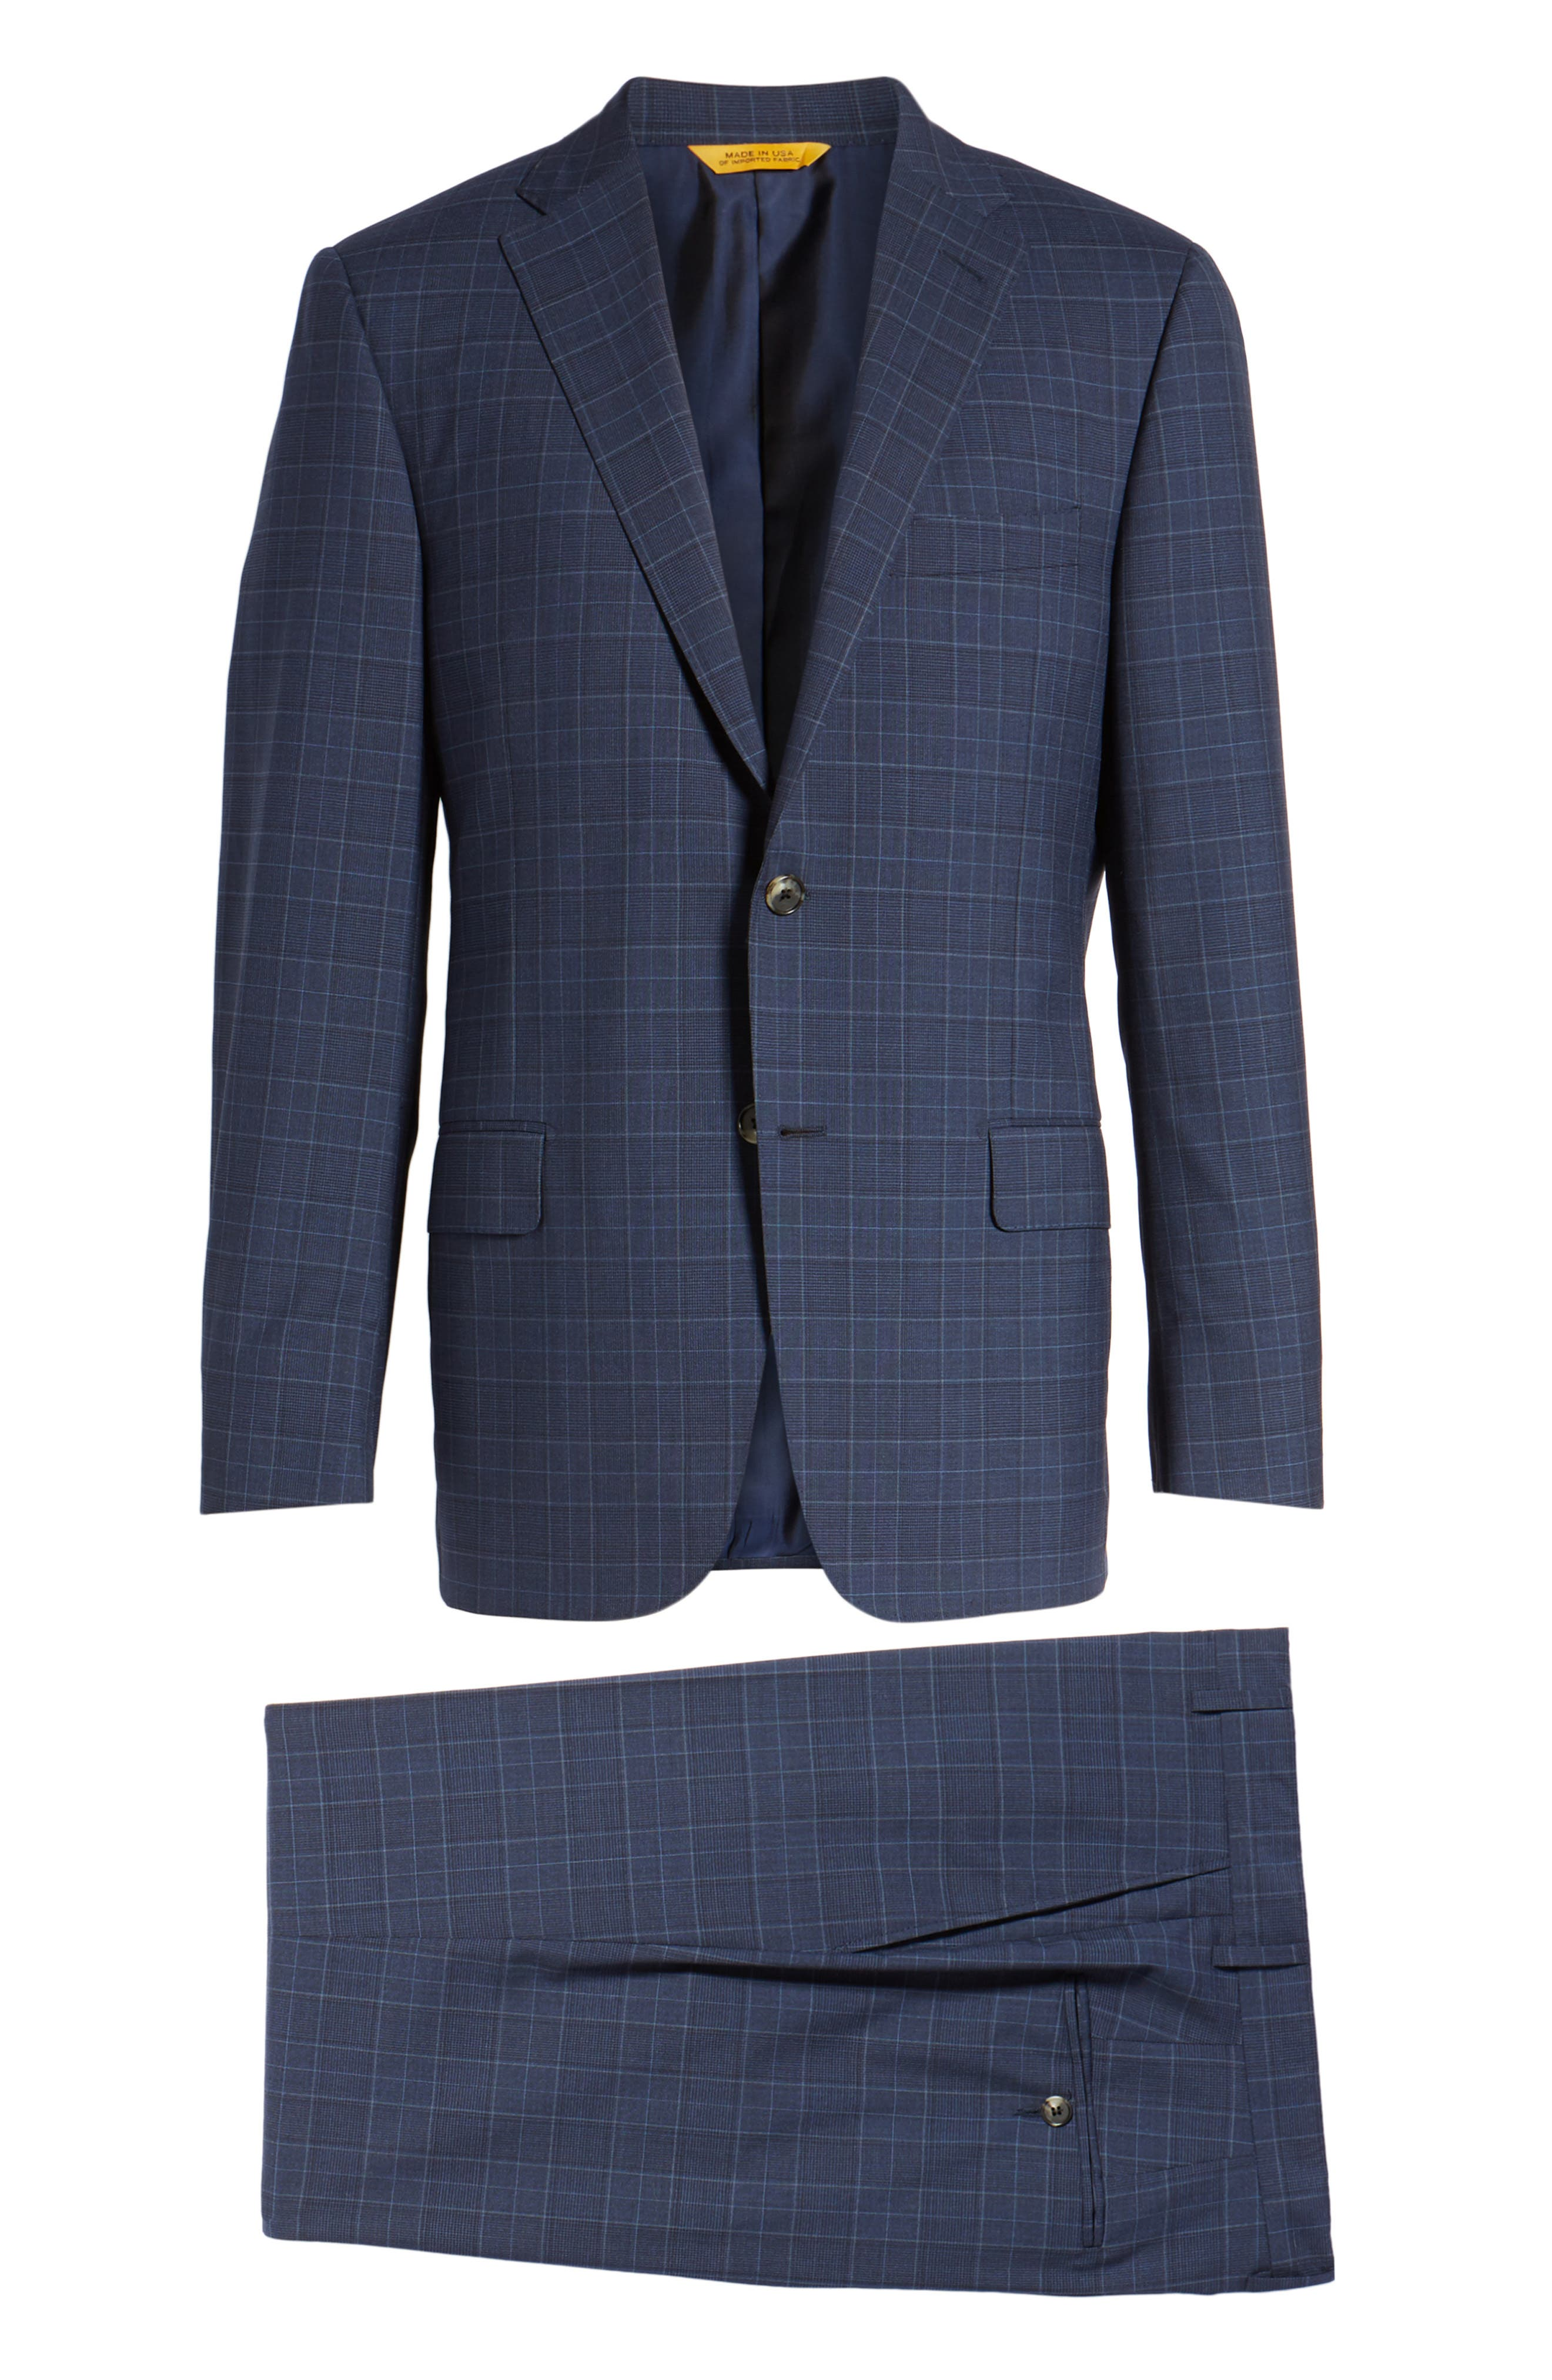 HICKEY FREEMAN,                             Classic B Fit Plaid Wool Suit,                             Alternate thumbnail 8, color,                             400